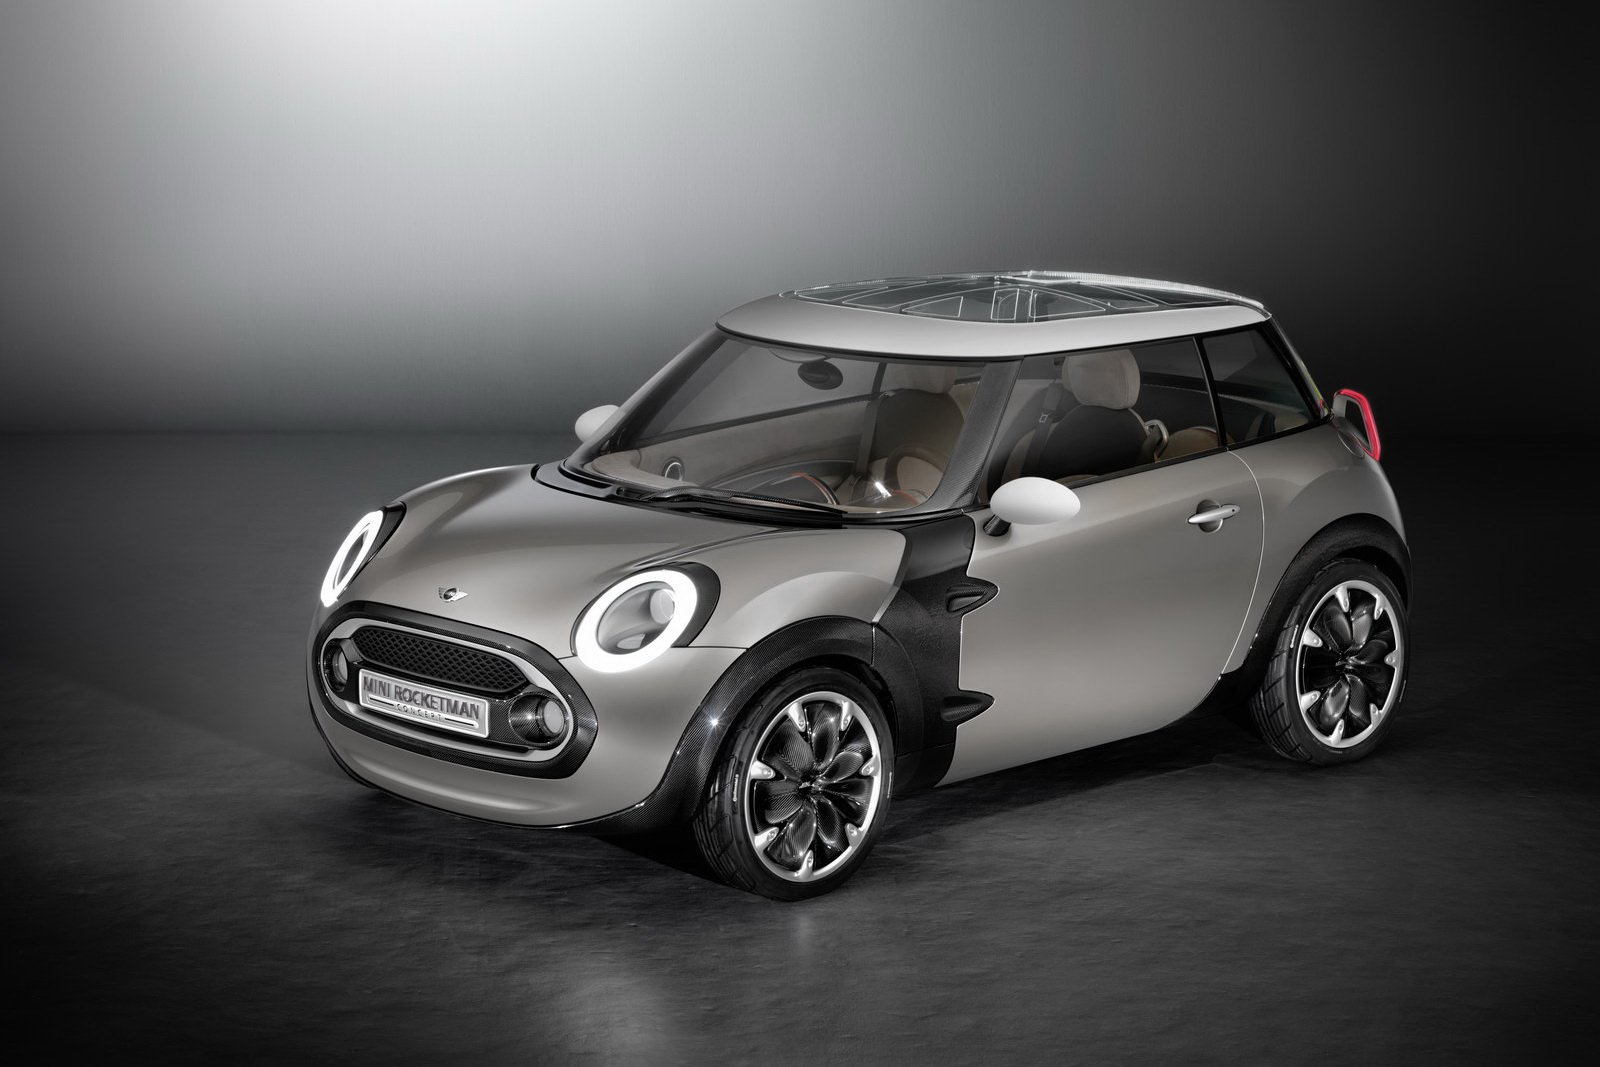 bbdfe47b-mini-electric-design-1